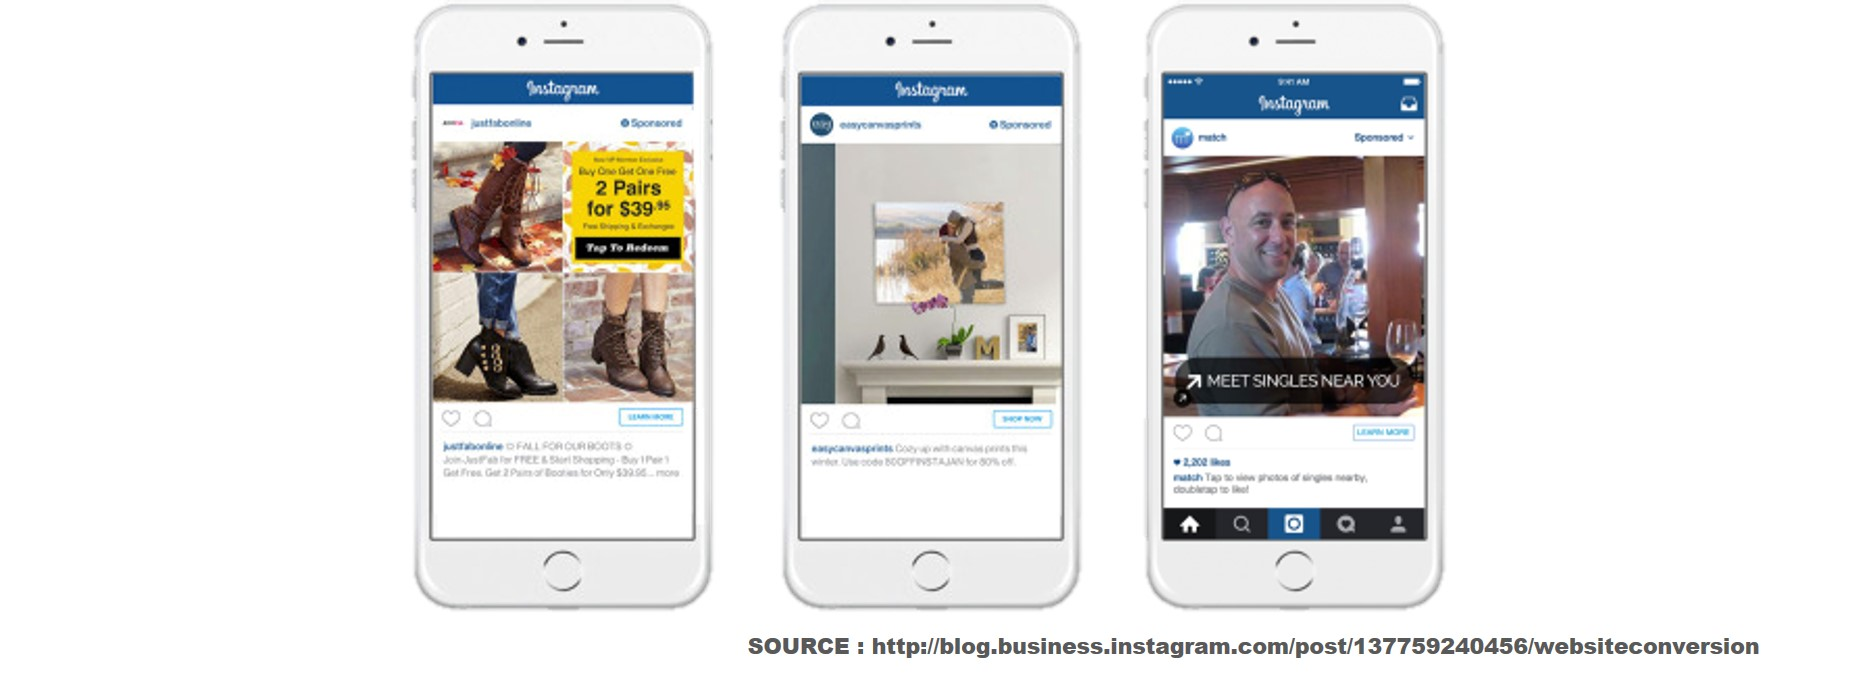 8 instagram conversions - webchronique